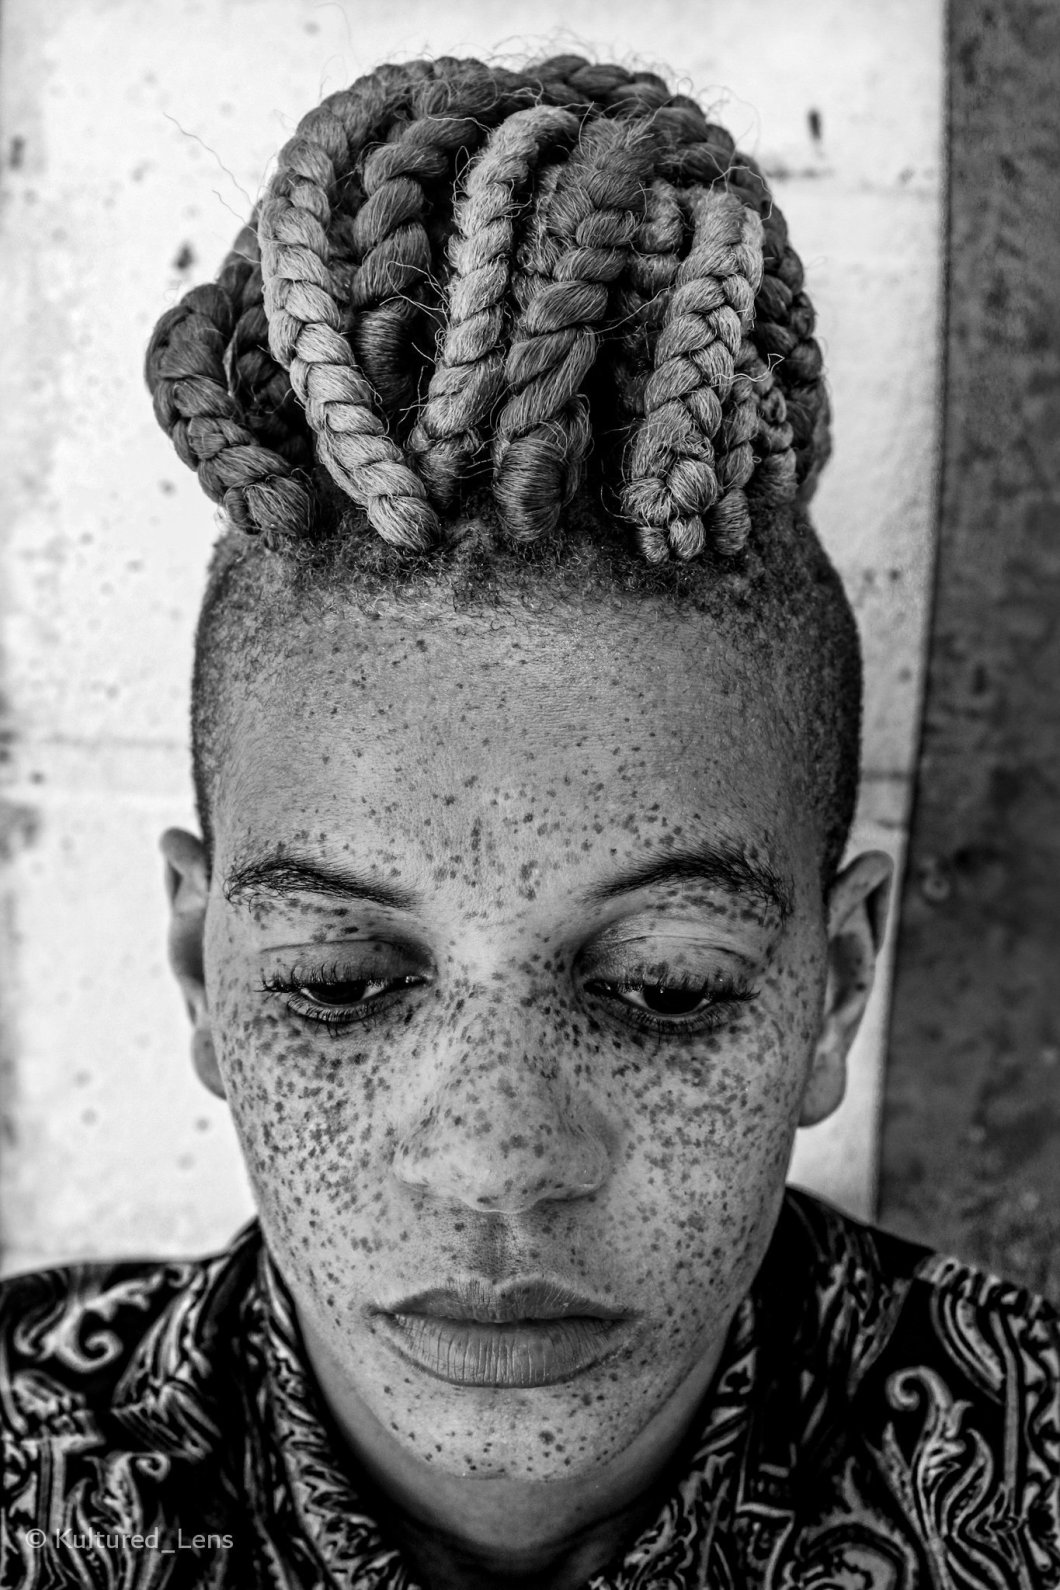 Black and White portrait of a woman of colour with freckles taken by Kultured Lens